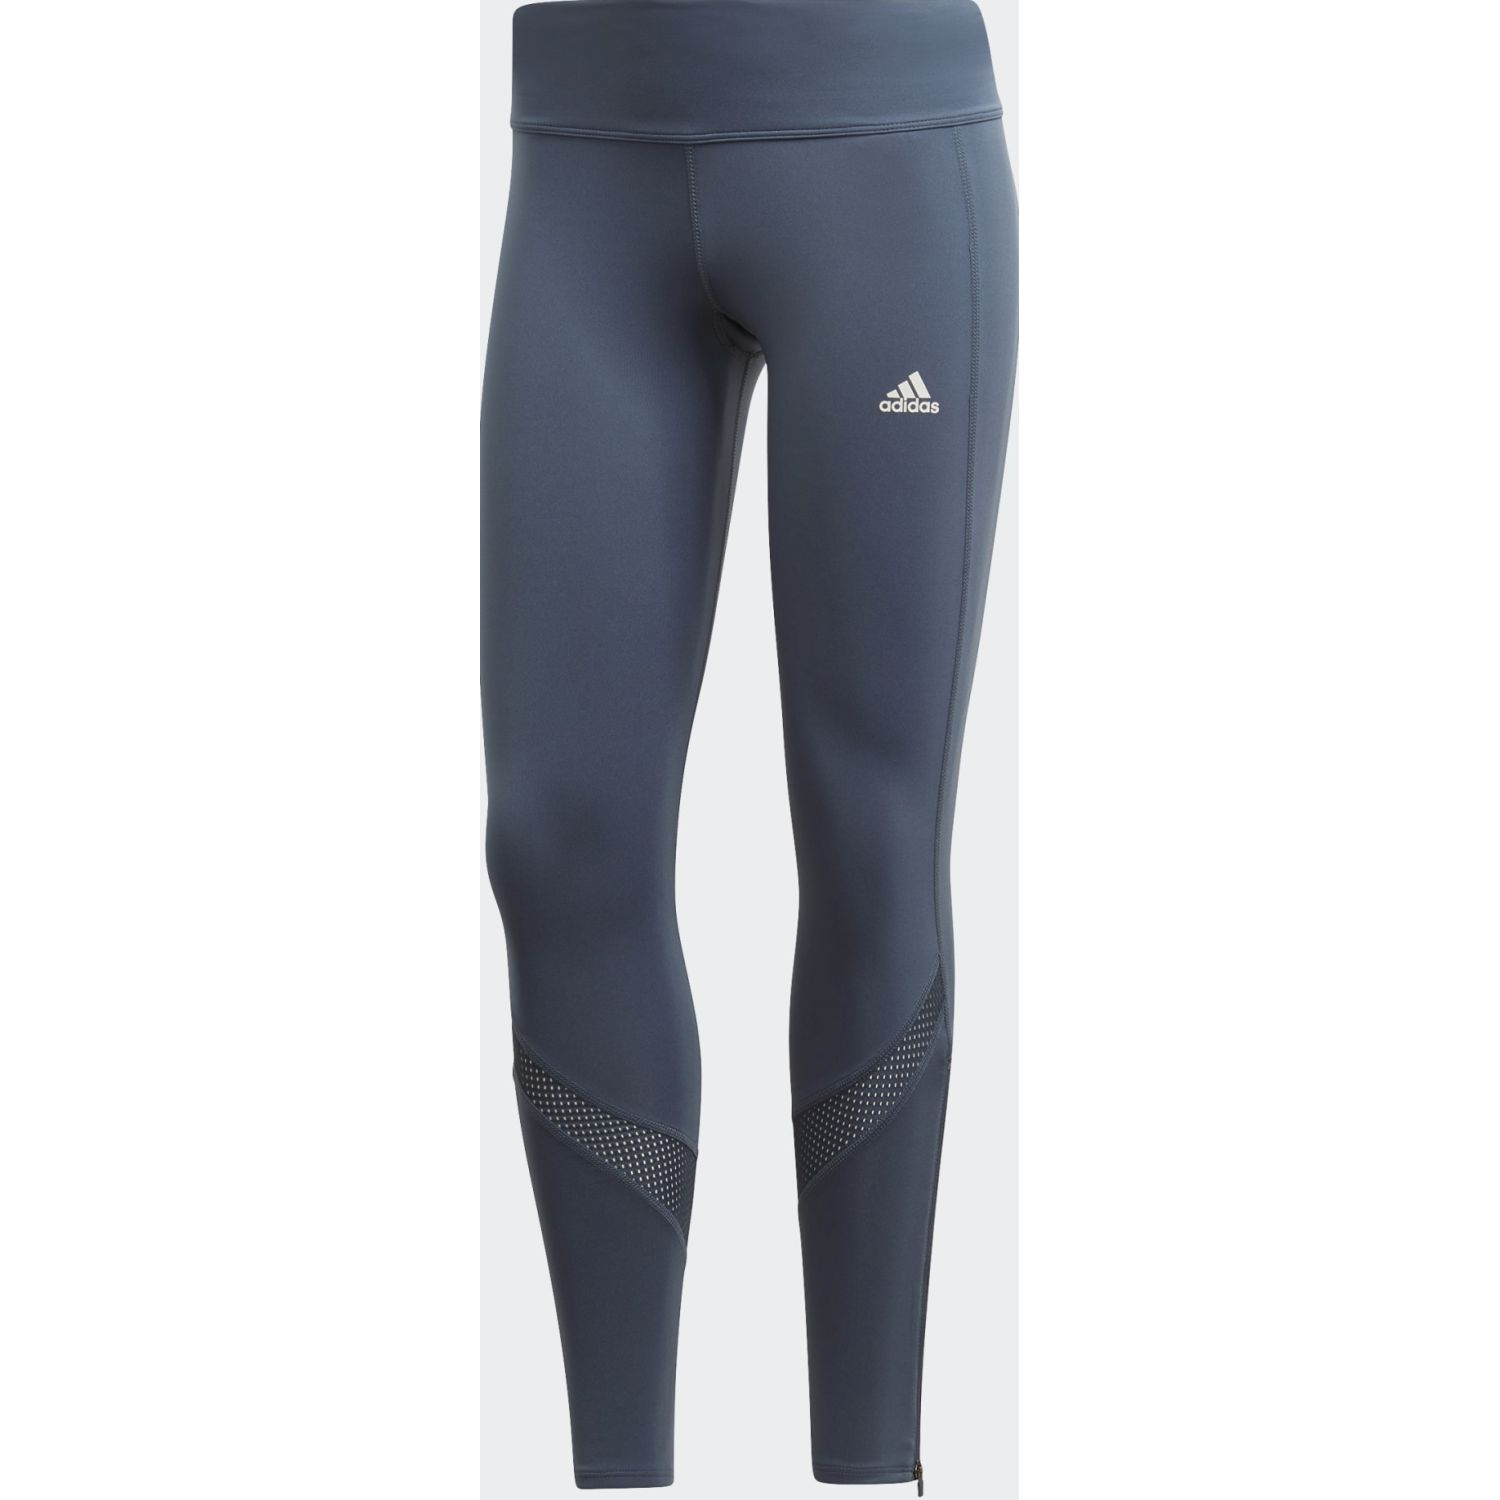 Adidas Own The Run Tgt Gris Leggings deportivos